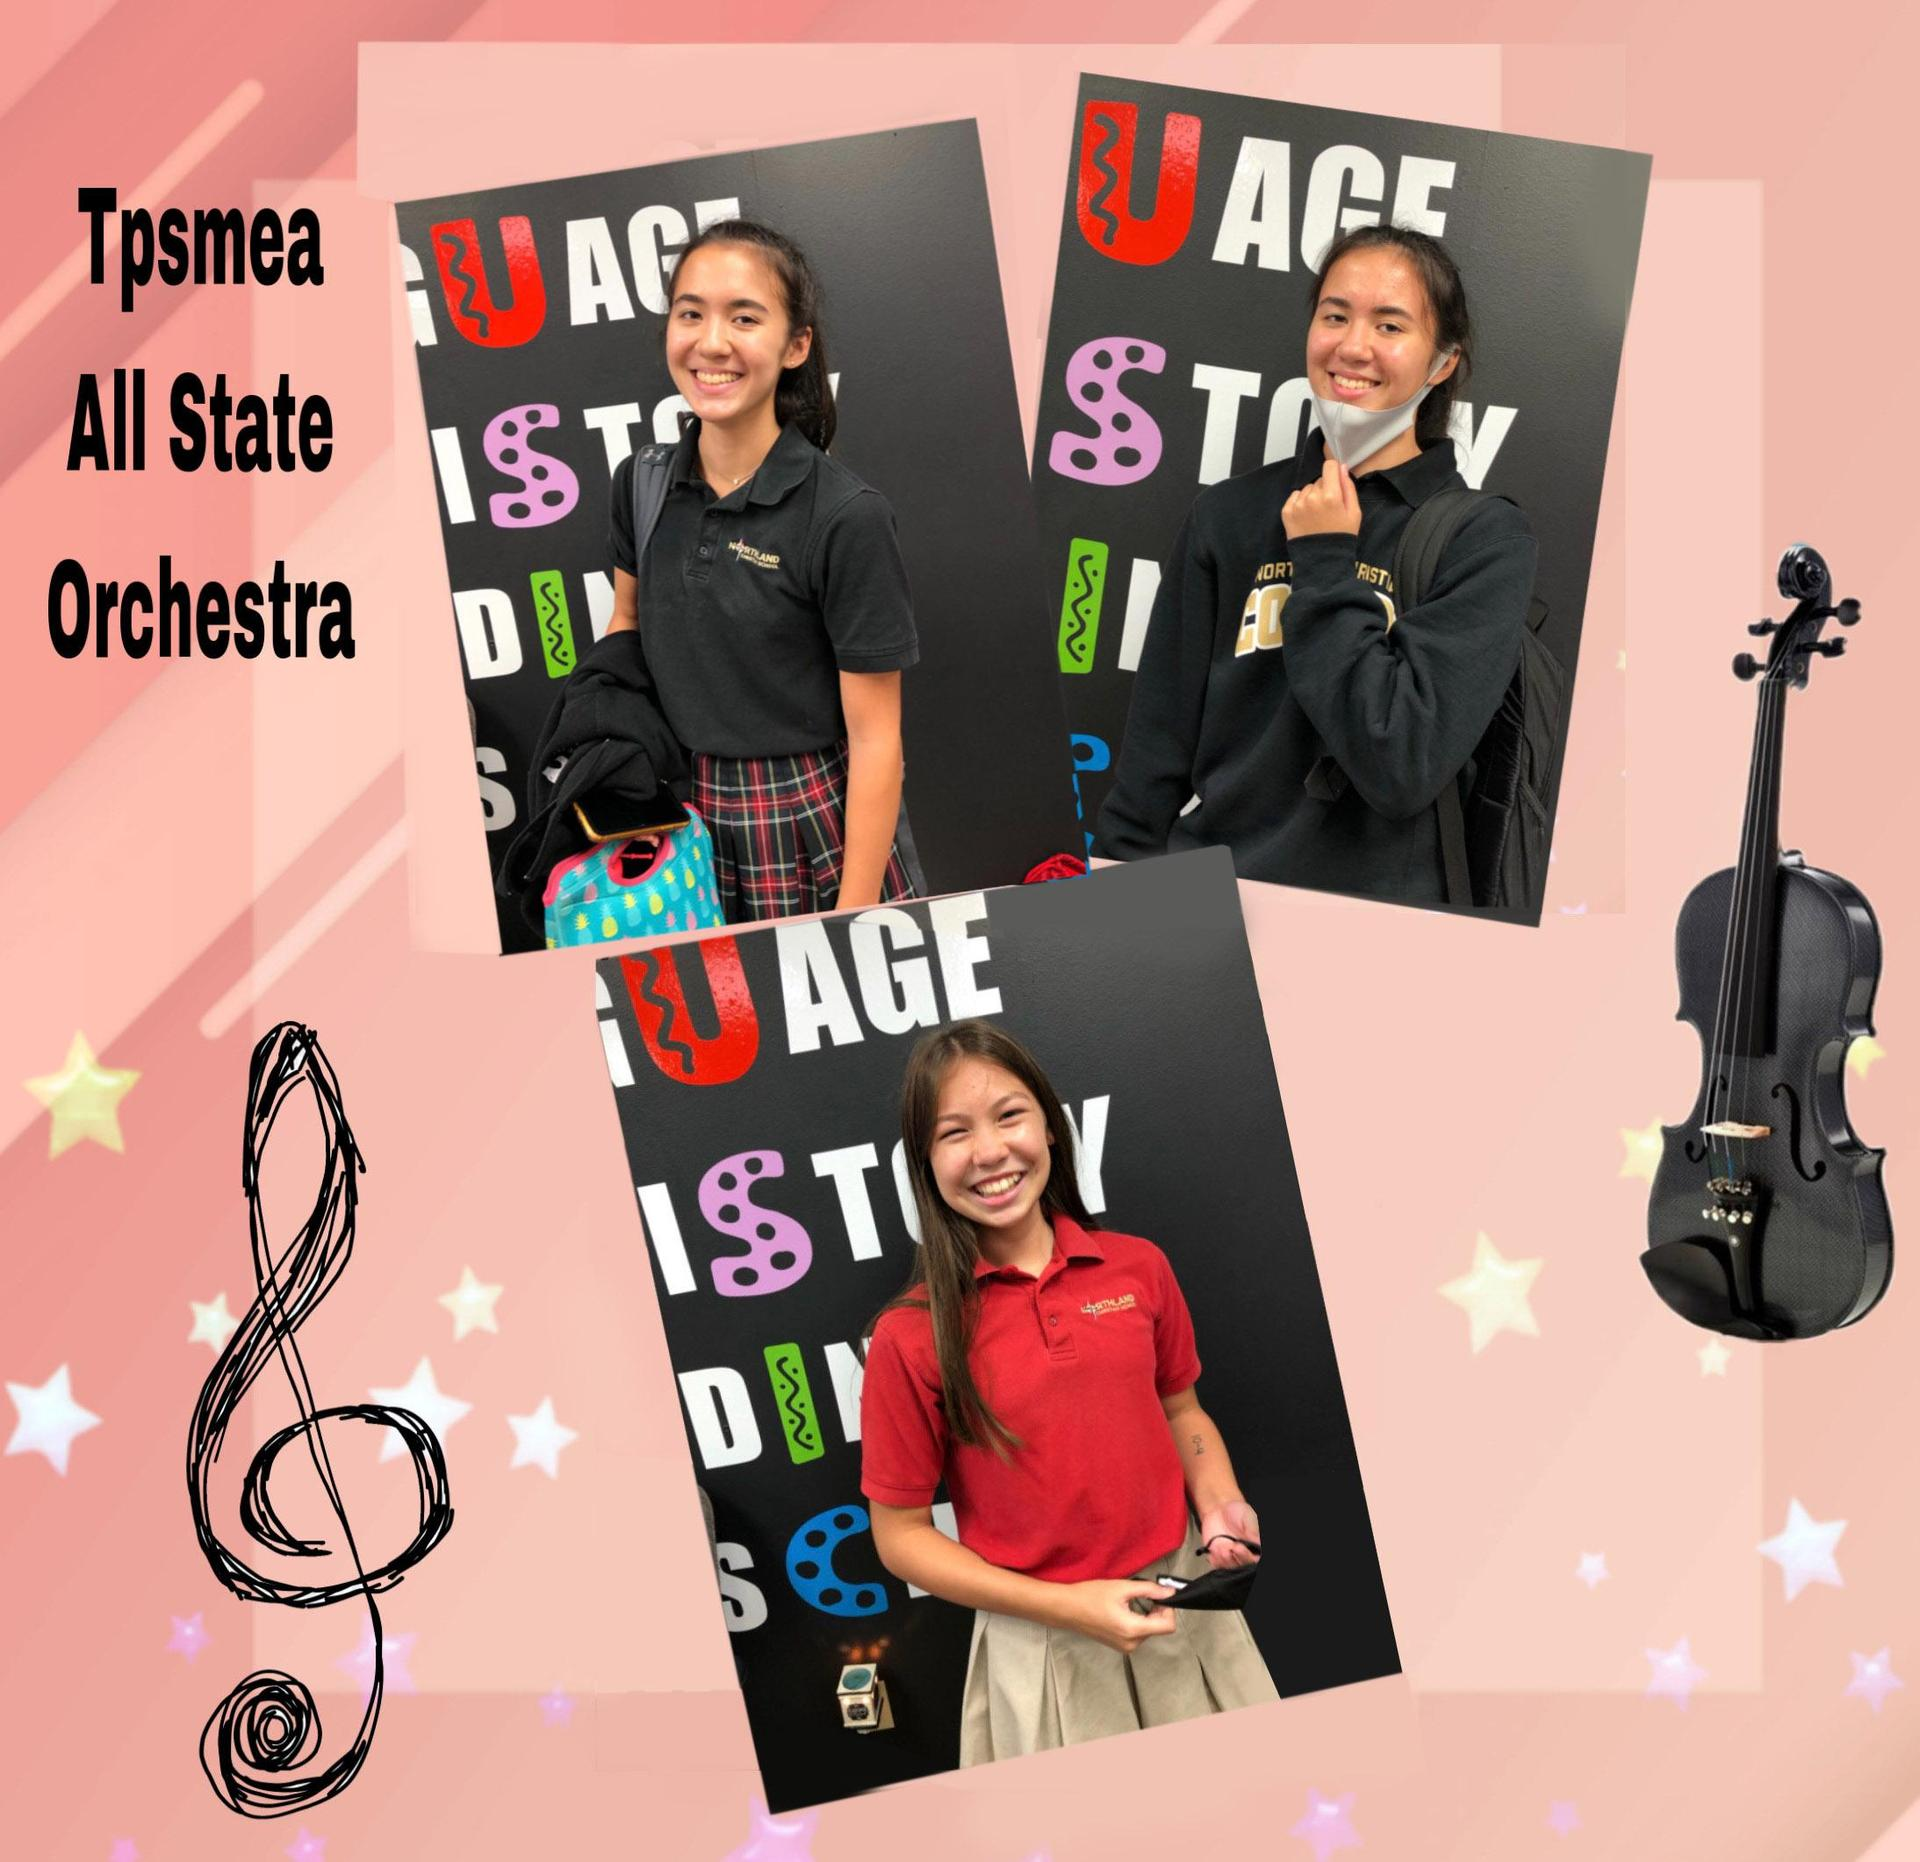 TPSMEA All State